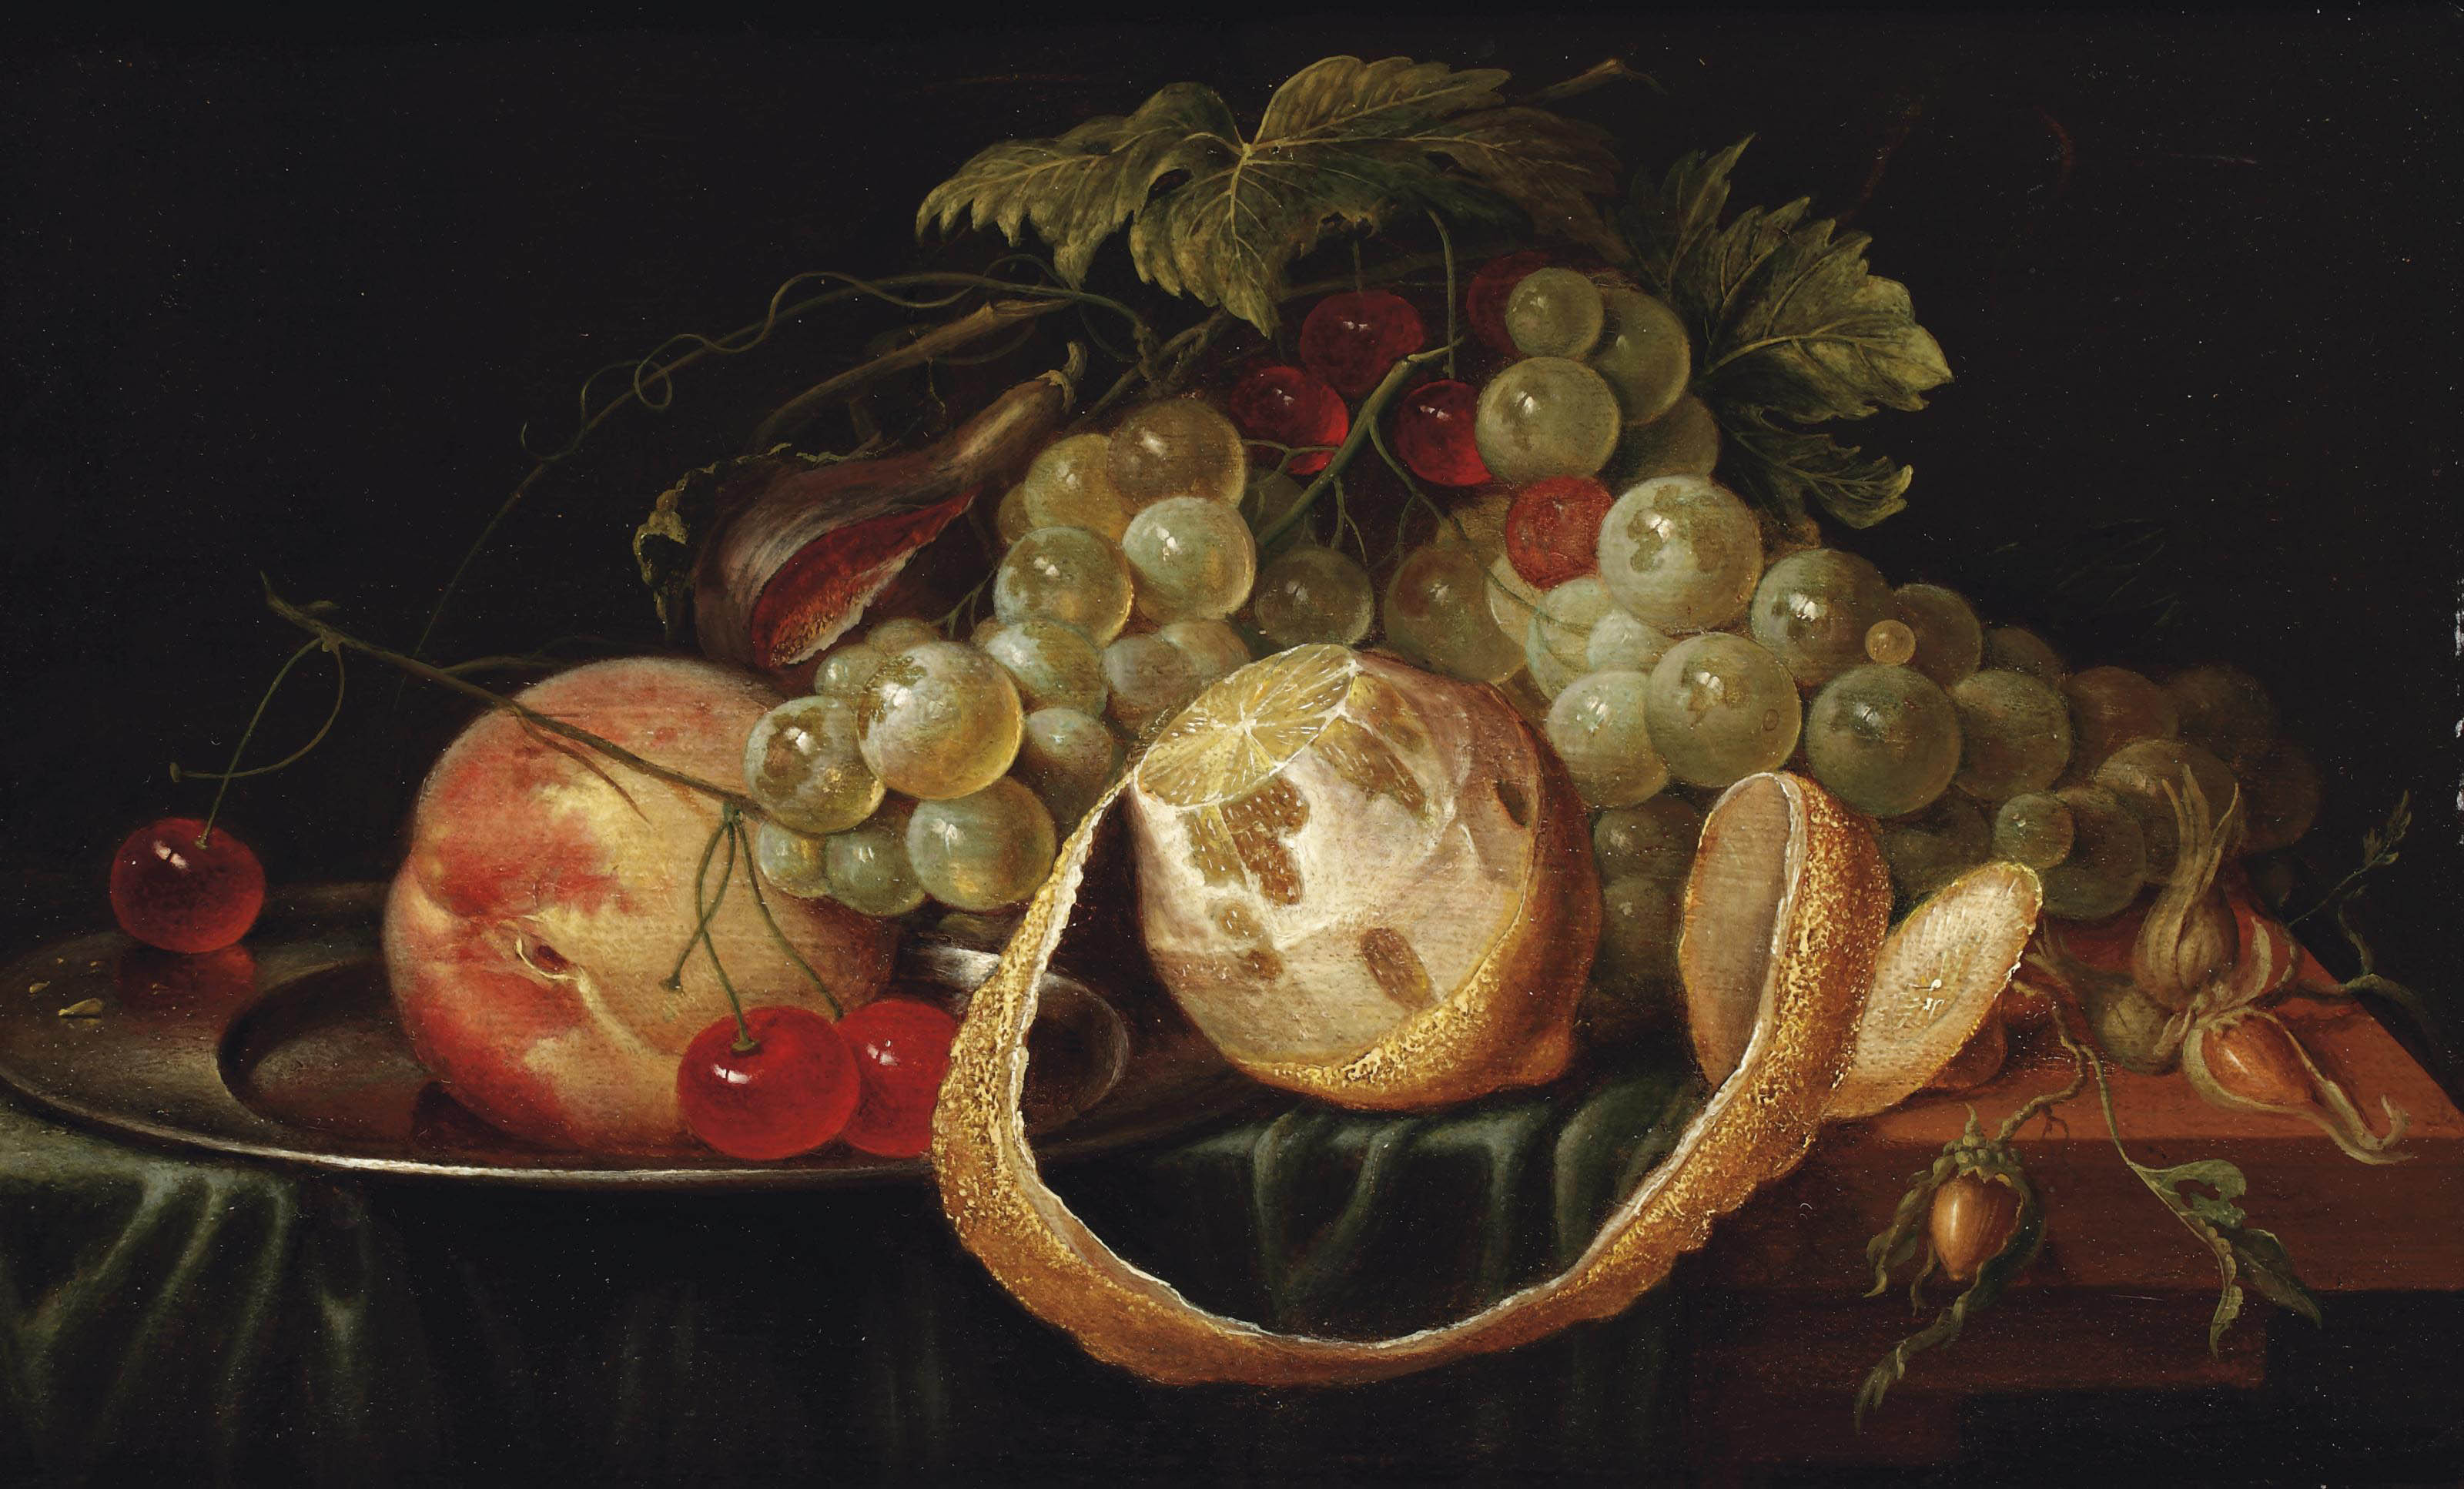 A lemon, white grapes, a peach and cherries on a pewter plate, a fig and hazelnuts, all on a partially draped stone ledge